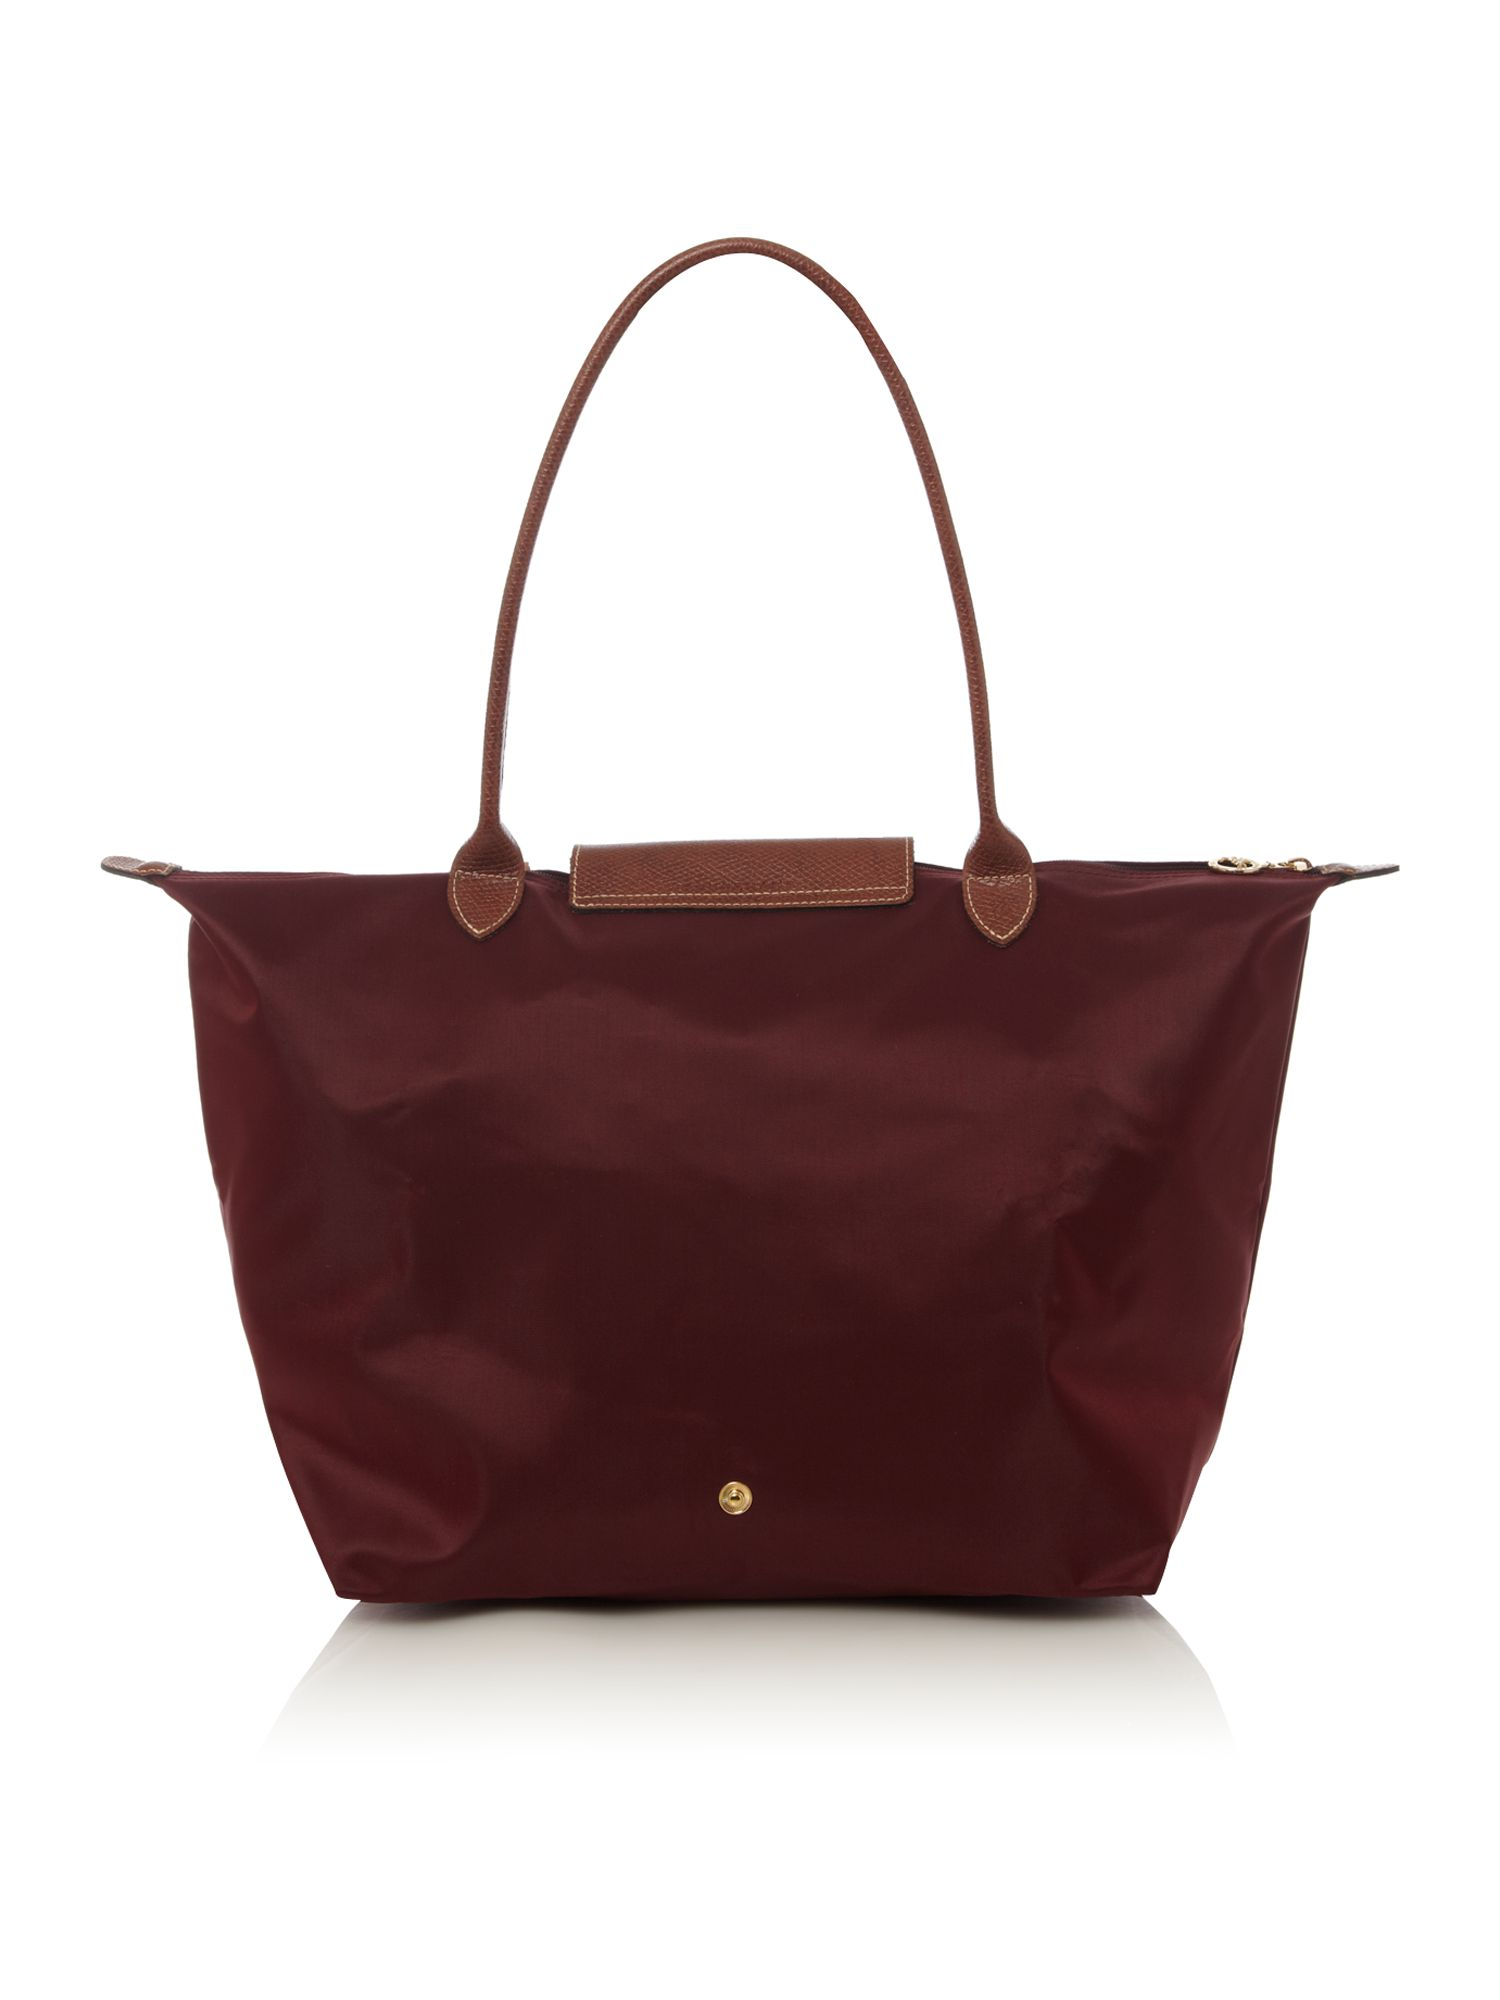 Longchamp Bag Le Pliage House Of Fraser : Longchamp le pliage tote in red lyst